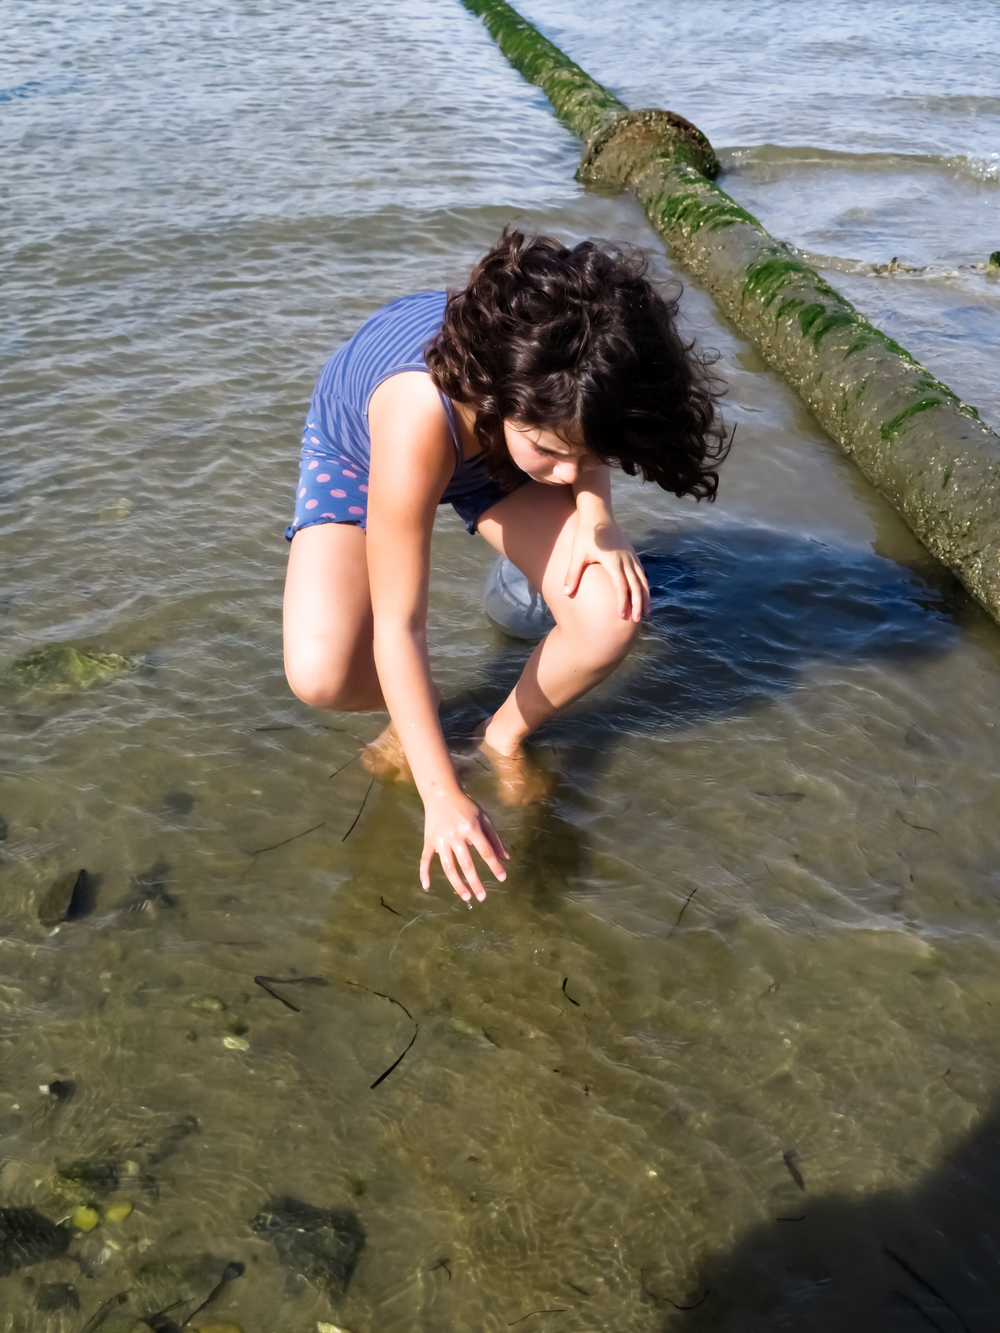 Student carefully picking up a long wristed hermit crab for observation during the marine biodiversity field trip